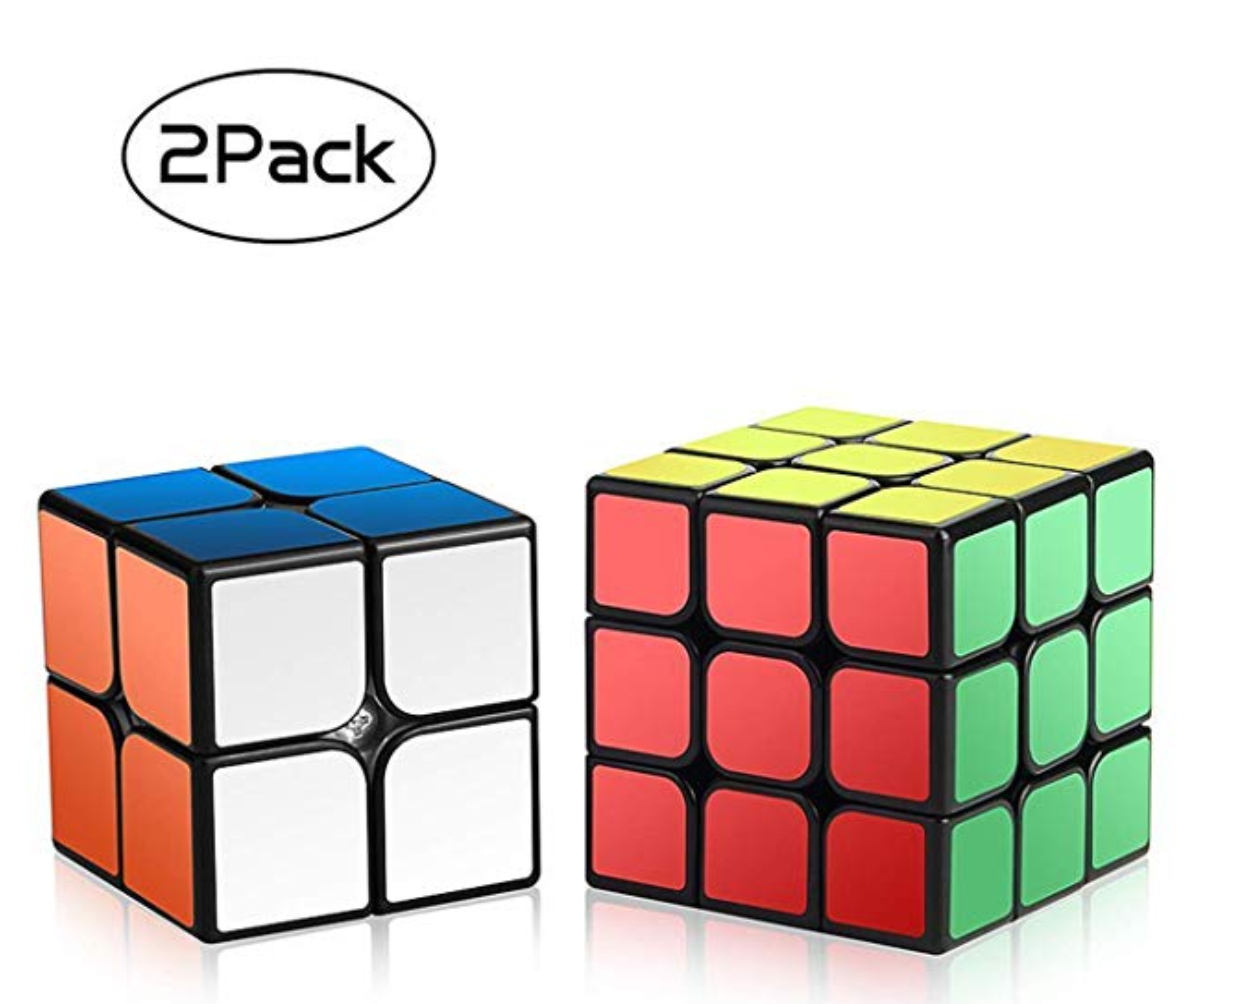 A 2 pack of Rubix cubes